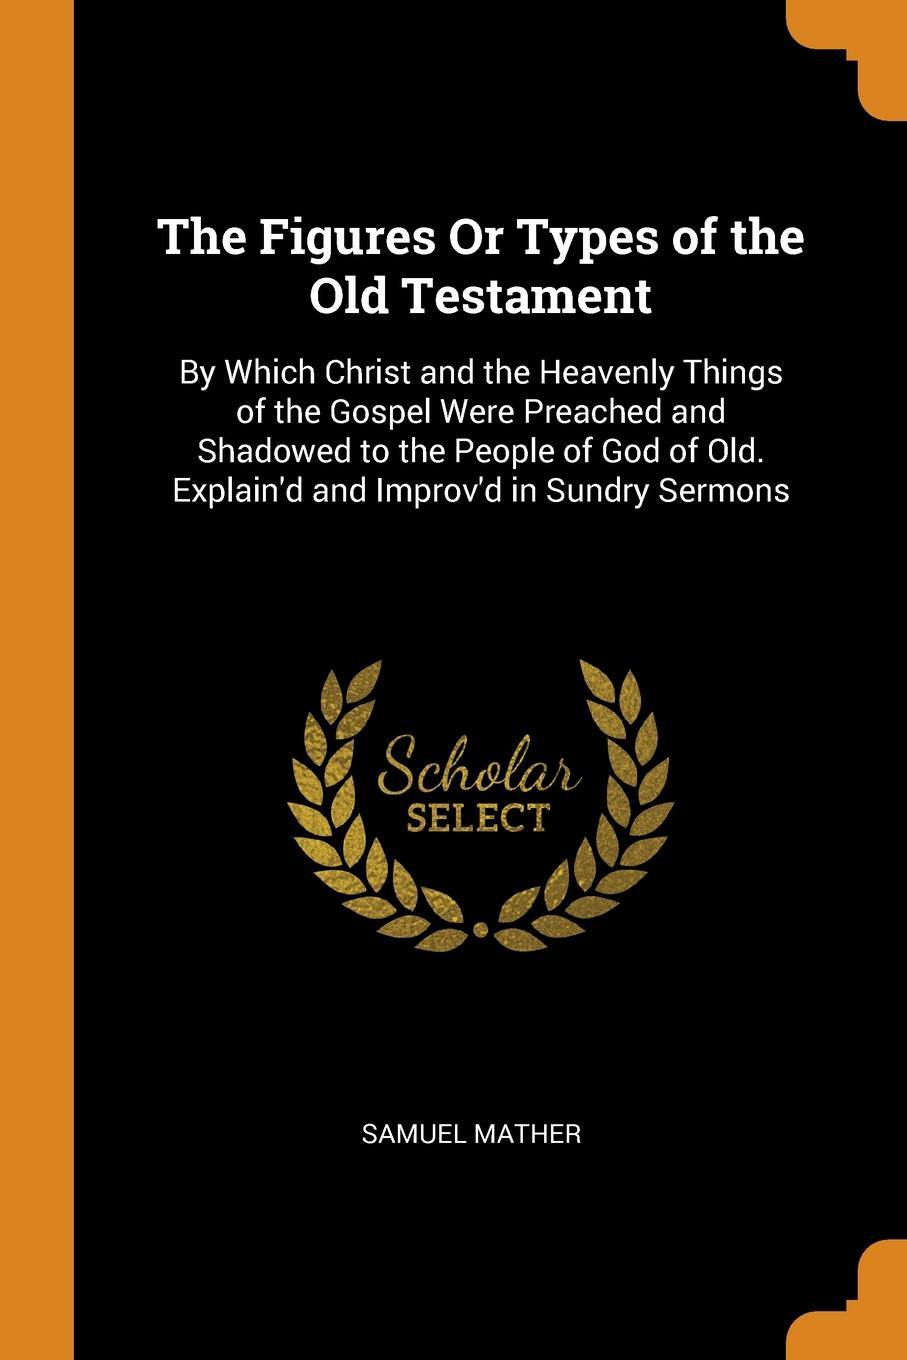 The-Figures-Or-Types-of-the-Old-Testament-By-Which-Christ-and-the-Heavenly-Things-of-the-Gospel-Were-Preached-and-Shadowed-to-the-People-of-God-of-Old